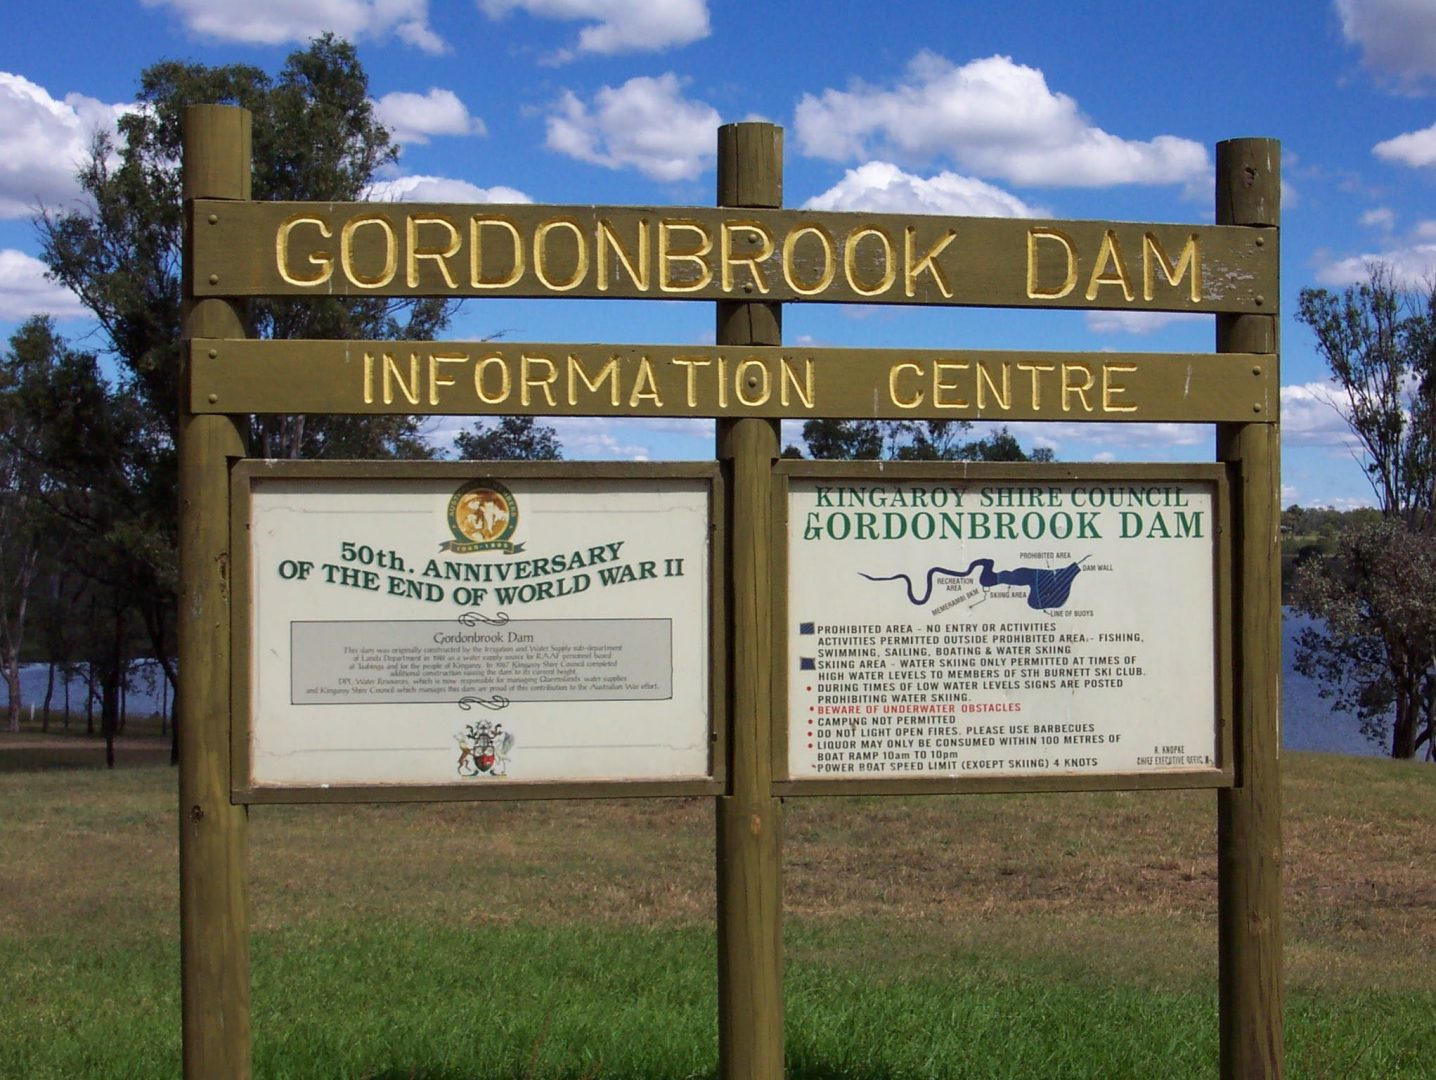 Gordonbrook Dam, South Burnett, Australia